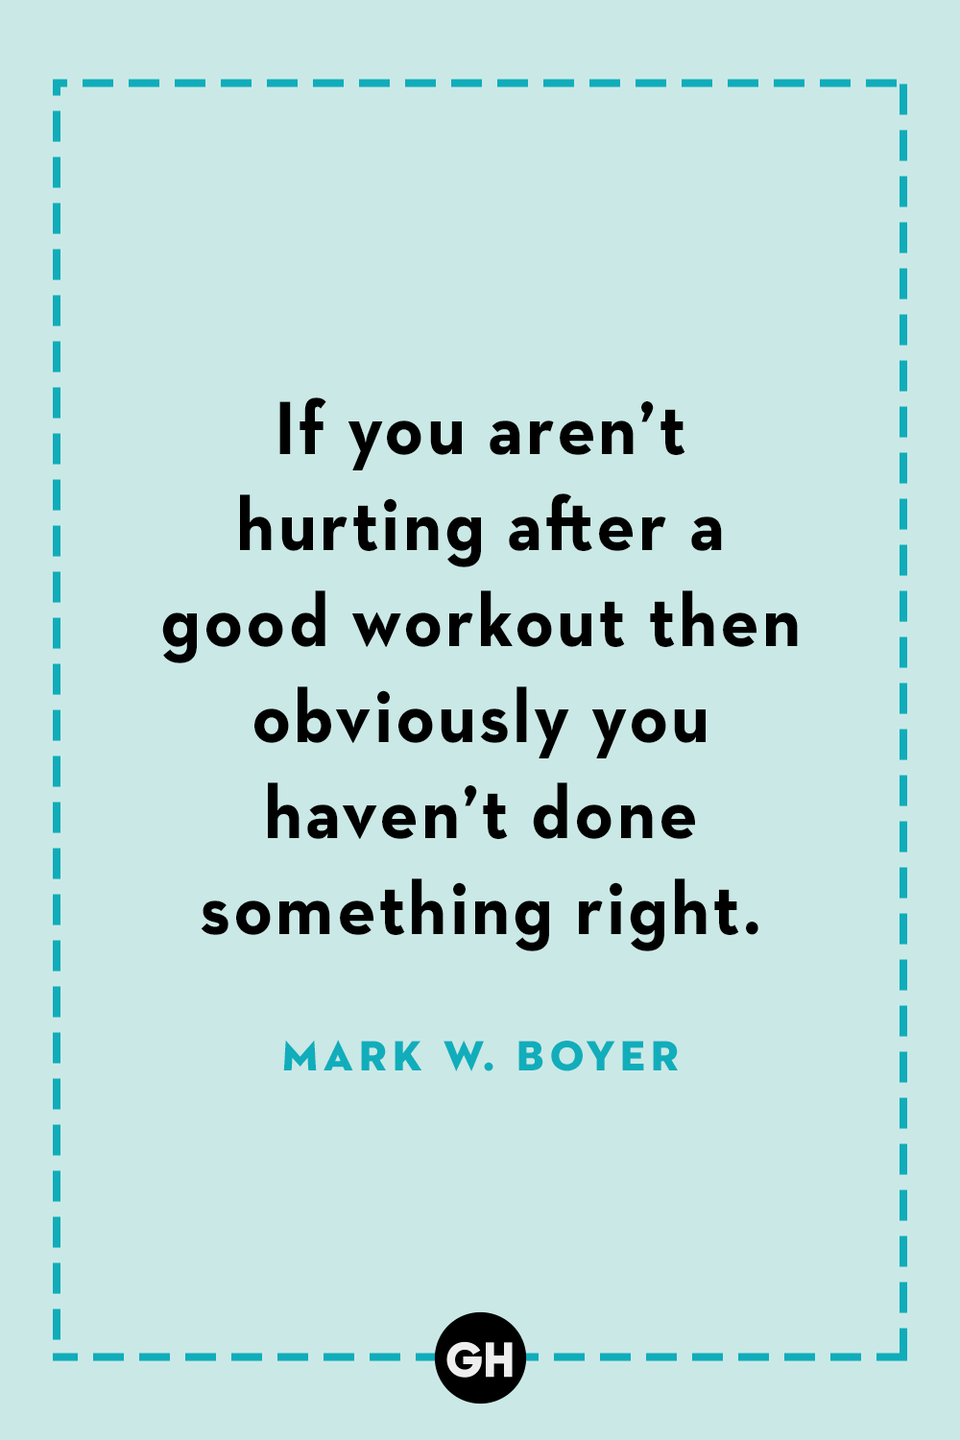 <p>If you aren't hurting after a good workout then obviously you haven't done something right.</p>